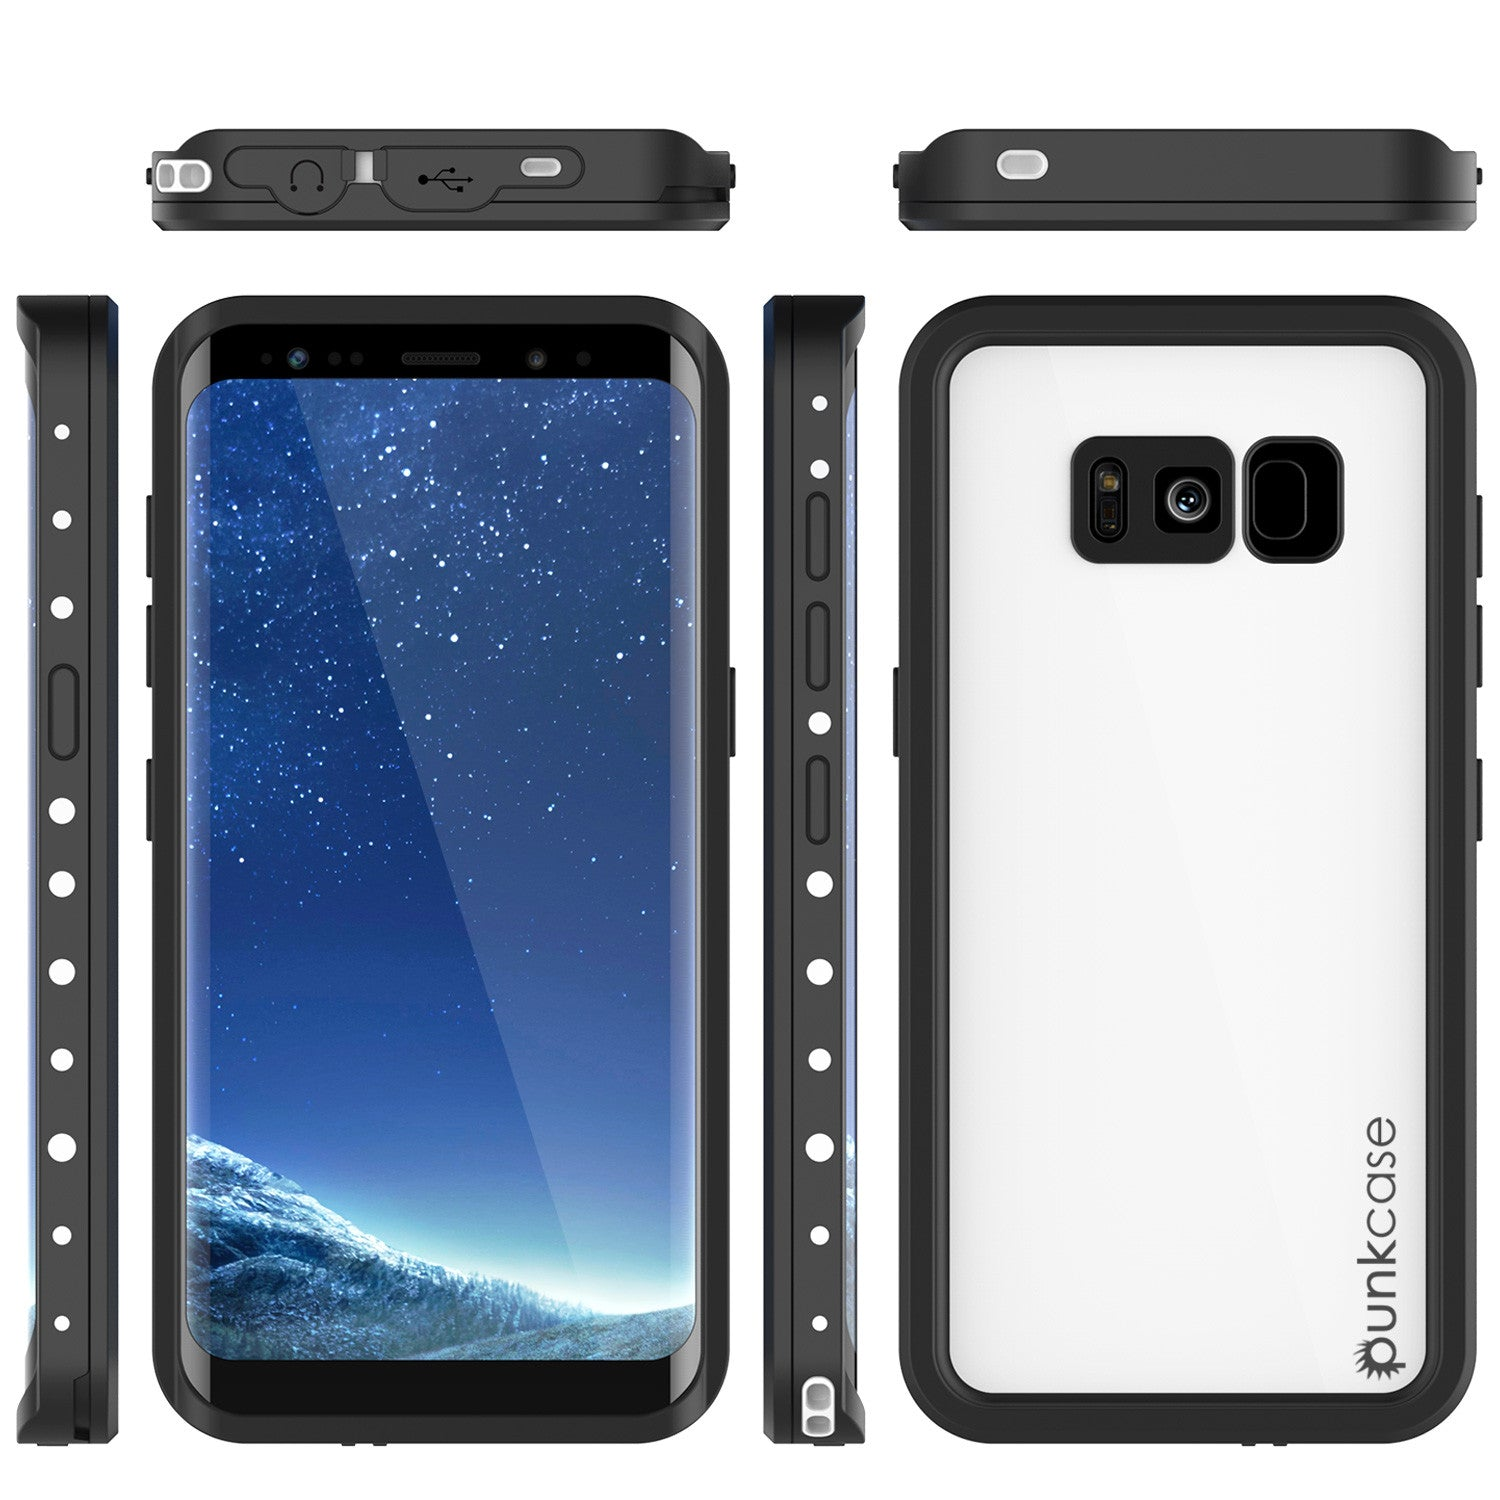 Galaxy S8 Plus Waterproof Case, Punkcase StudStar White Thin 6.6ft Underwater IP68 Shock/Snow Proof